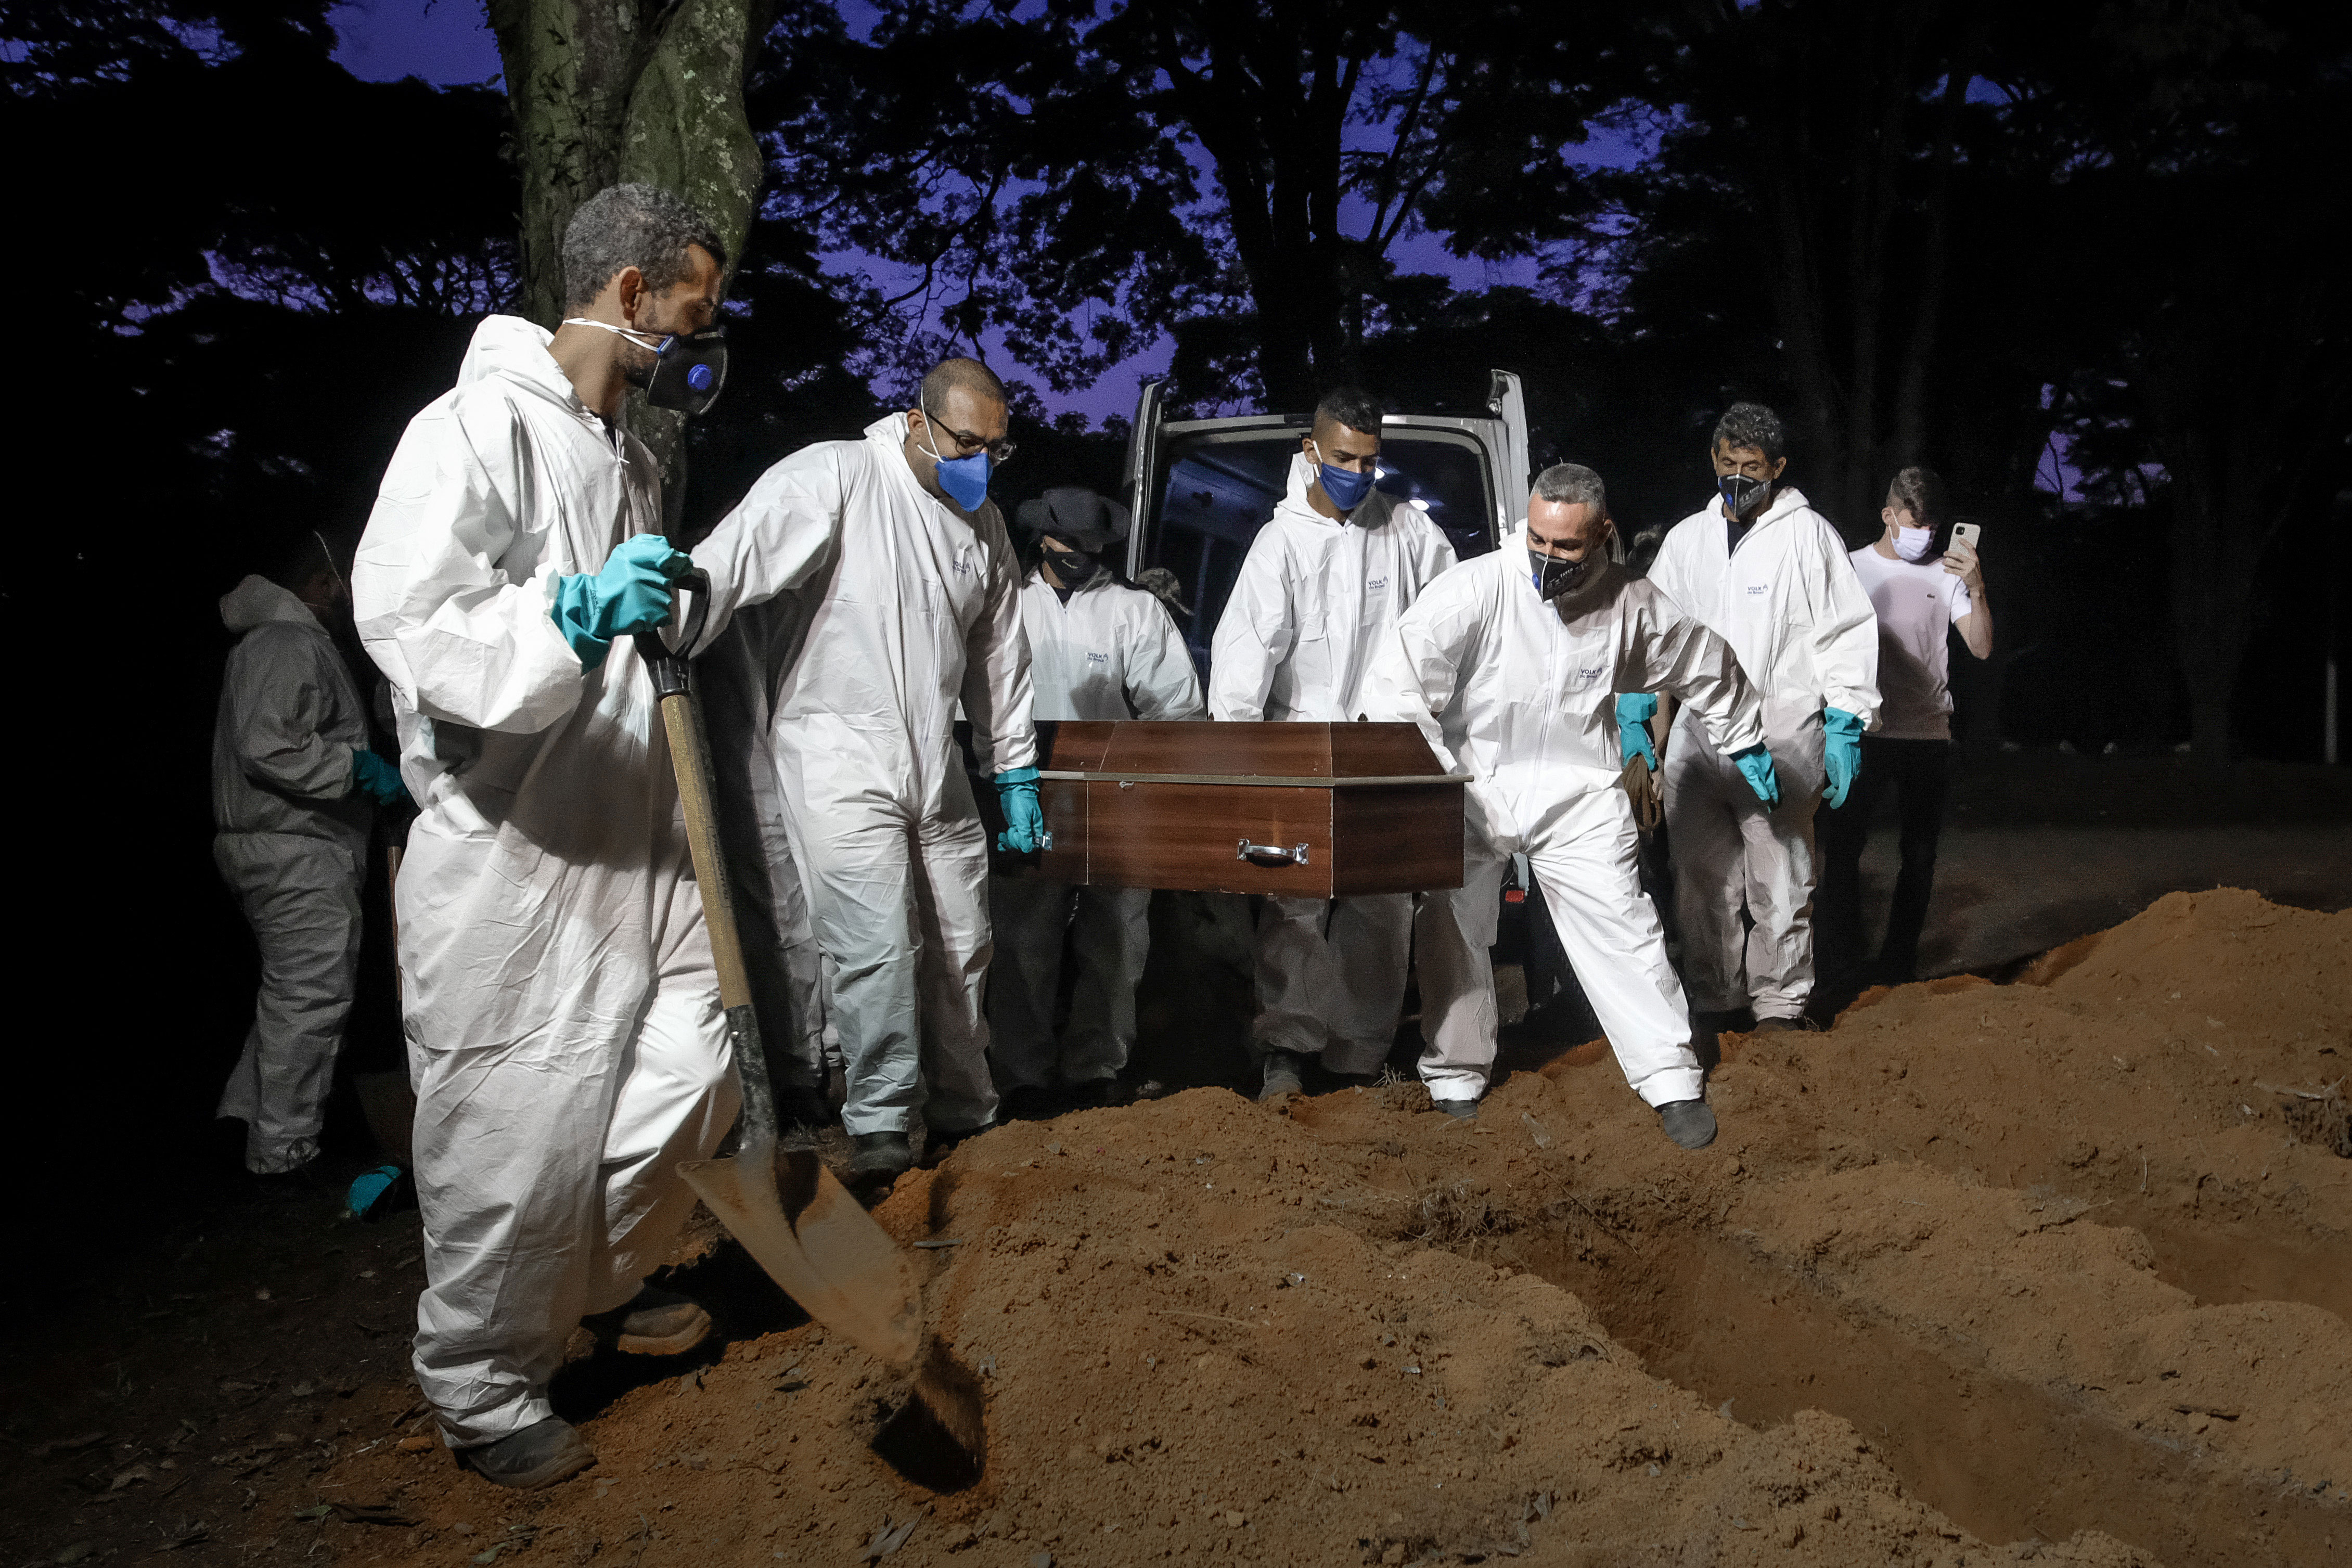 Employees of the Vila Formosa cemetery carry a coffin to bury a person who died of Covid-19 in São Paulo, Brazil, on April 2.